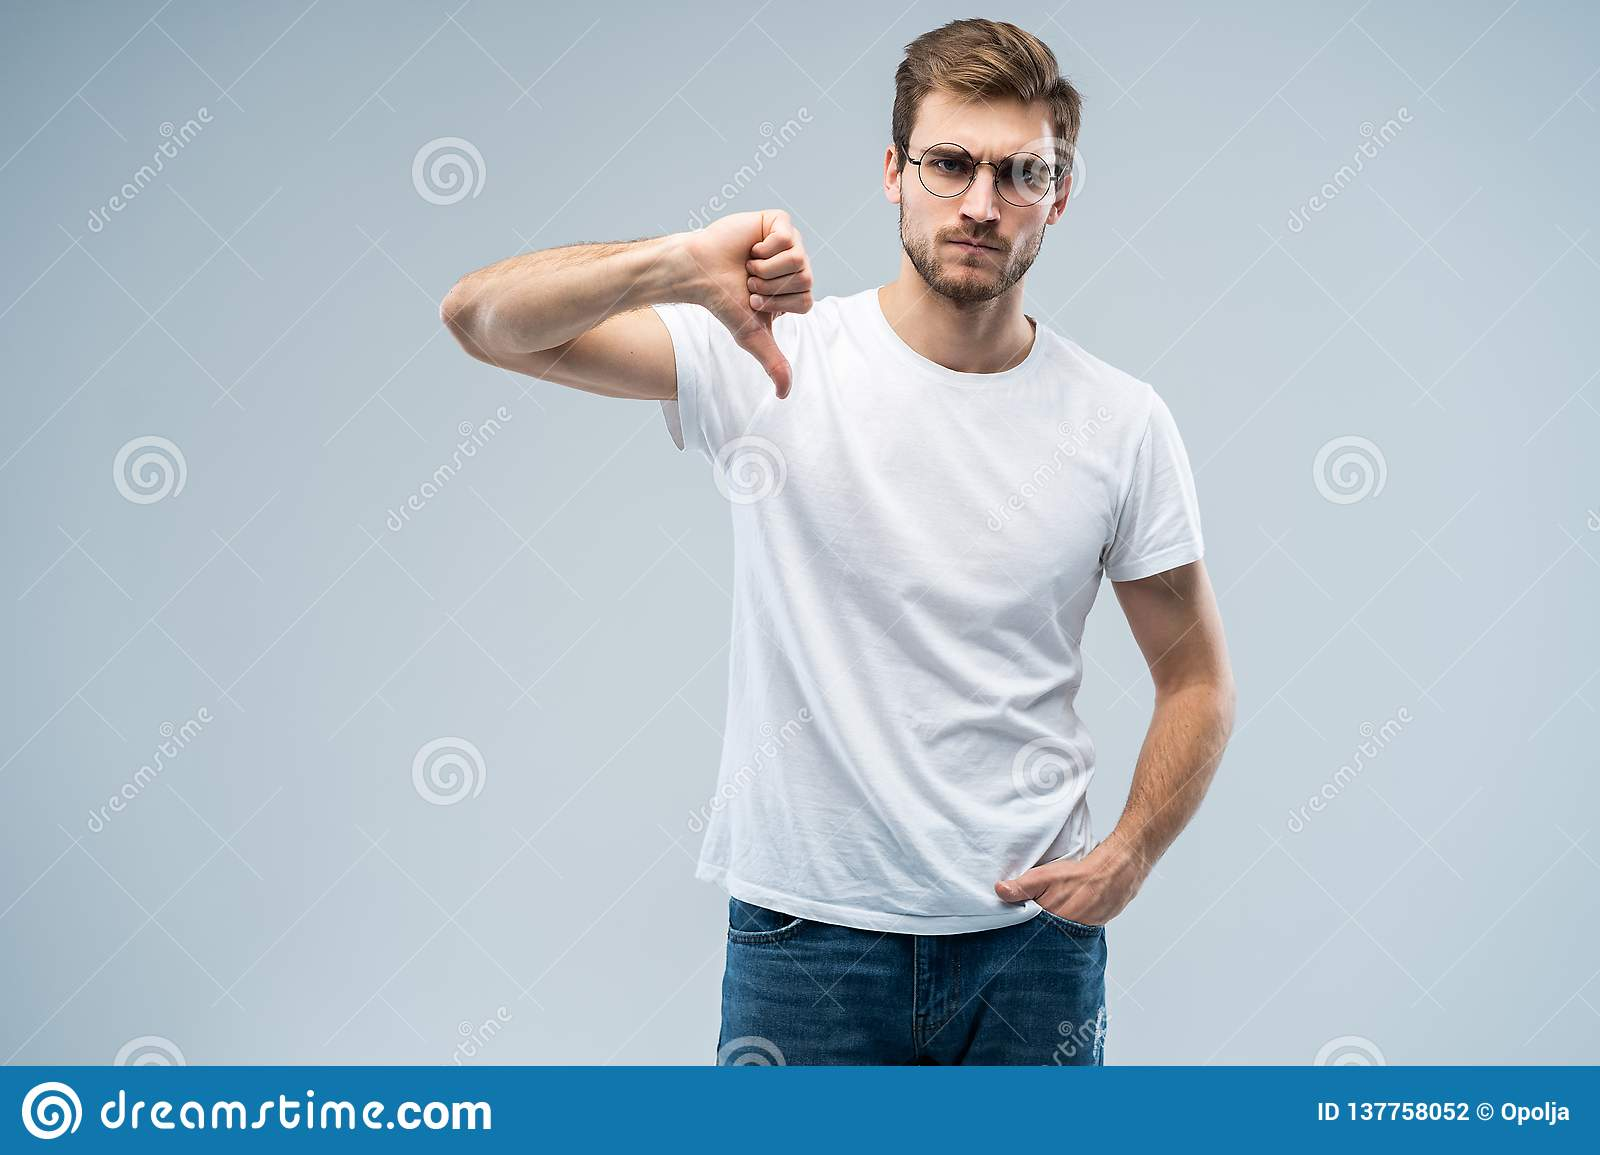 Stylish fashionable male poses indoors against gray background, assess project, shows sign of dislike, looks with